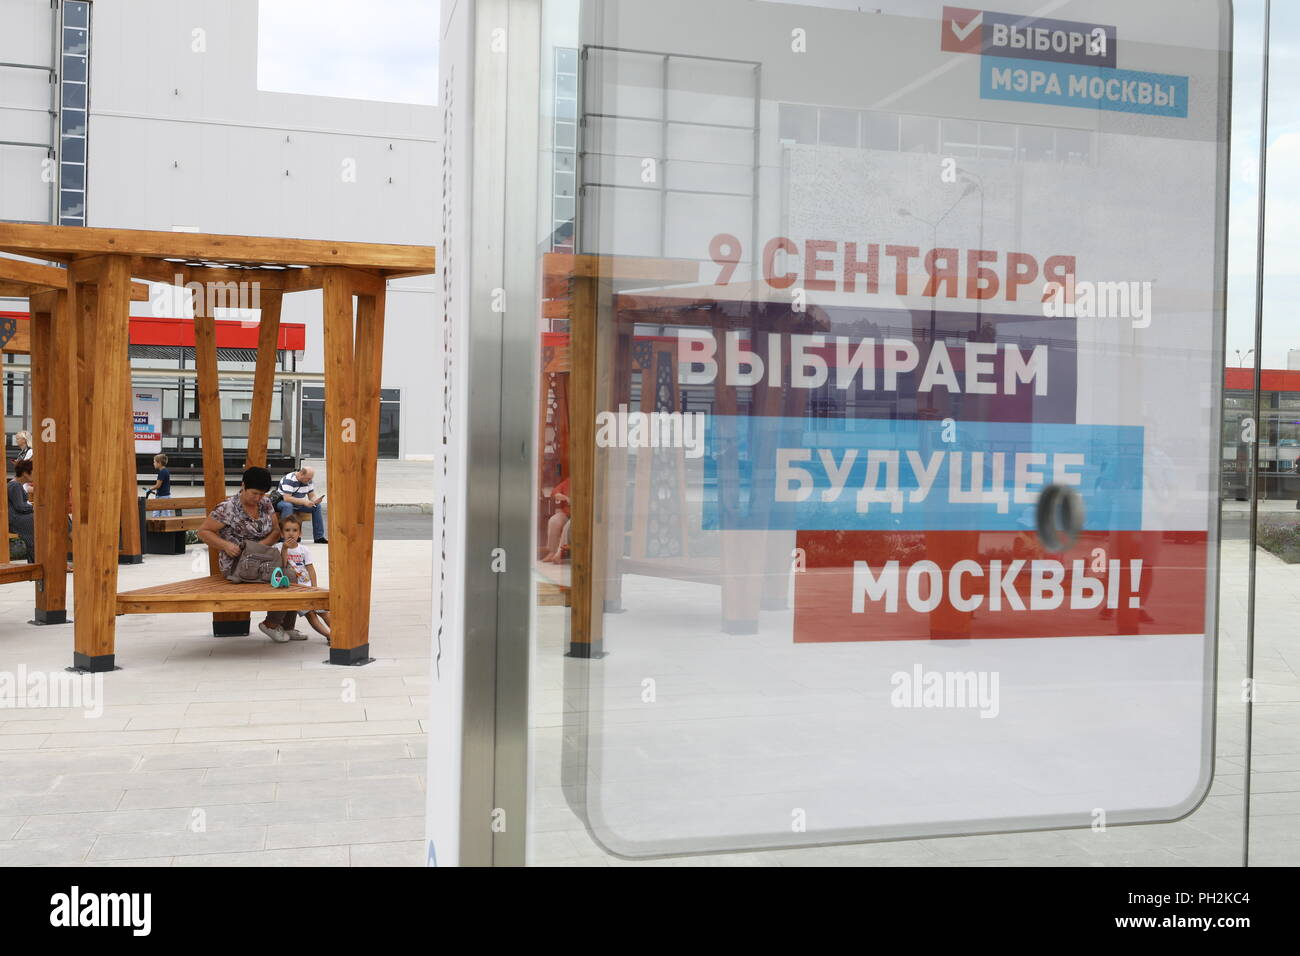 Moscow, Russia. 30th Aug, 2018. MOSCOW, RUSSIA - AUGUST 30, 2018: A poster promoting the 2018 Moscow Mayoral election at a public transport stop near Rasskazovka Station on Line 8A (Solntsevskaya Line) of the Moscow Underground. Mikhail Tereshchenko/TASS Credit: ITAR-TASS News Agency/Alamy Live News - Stock Image